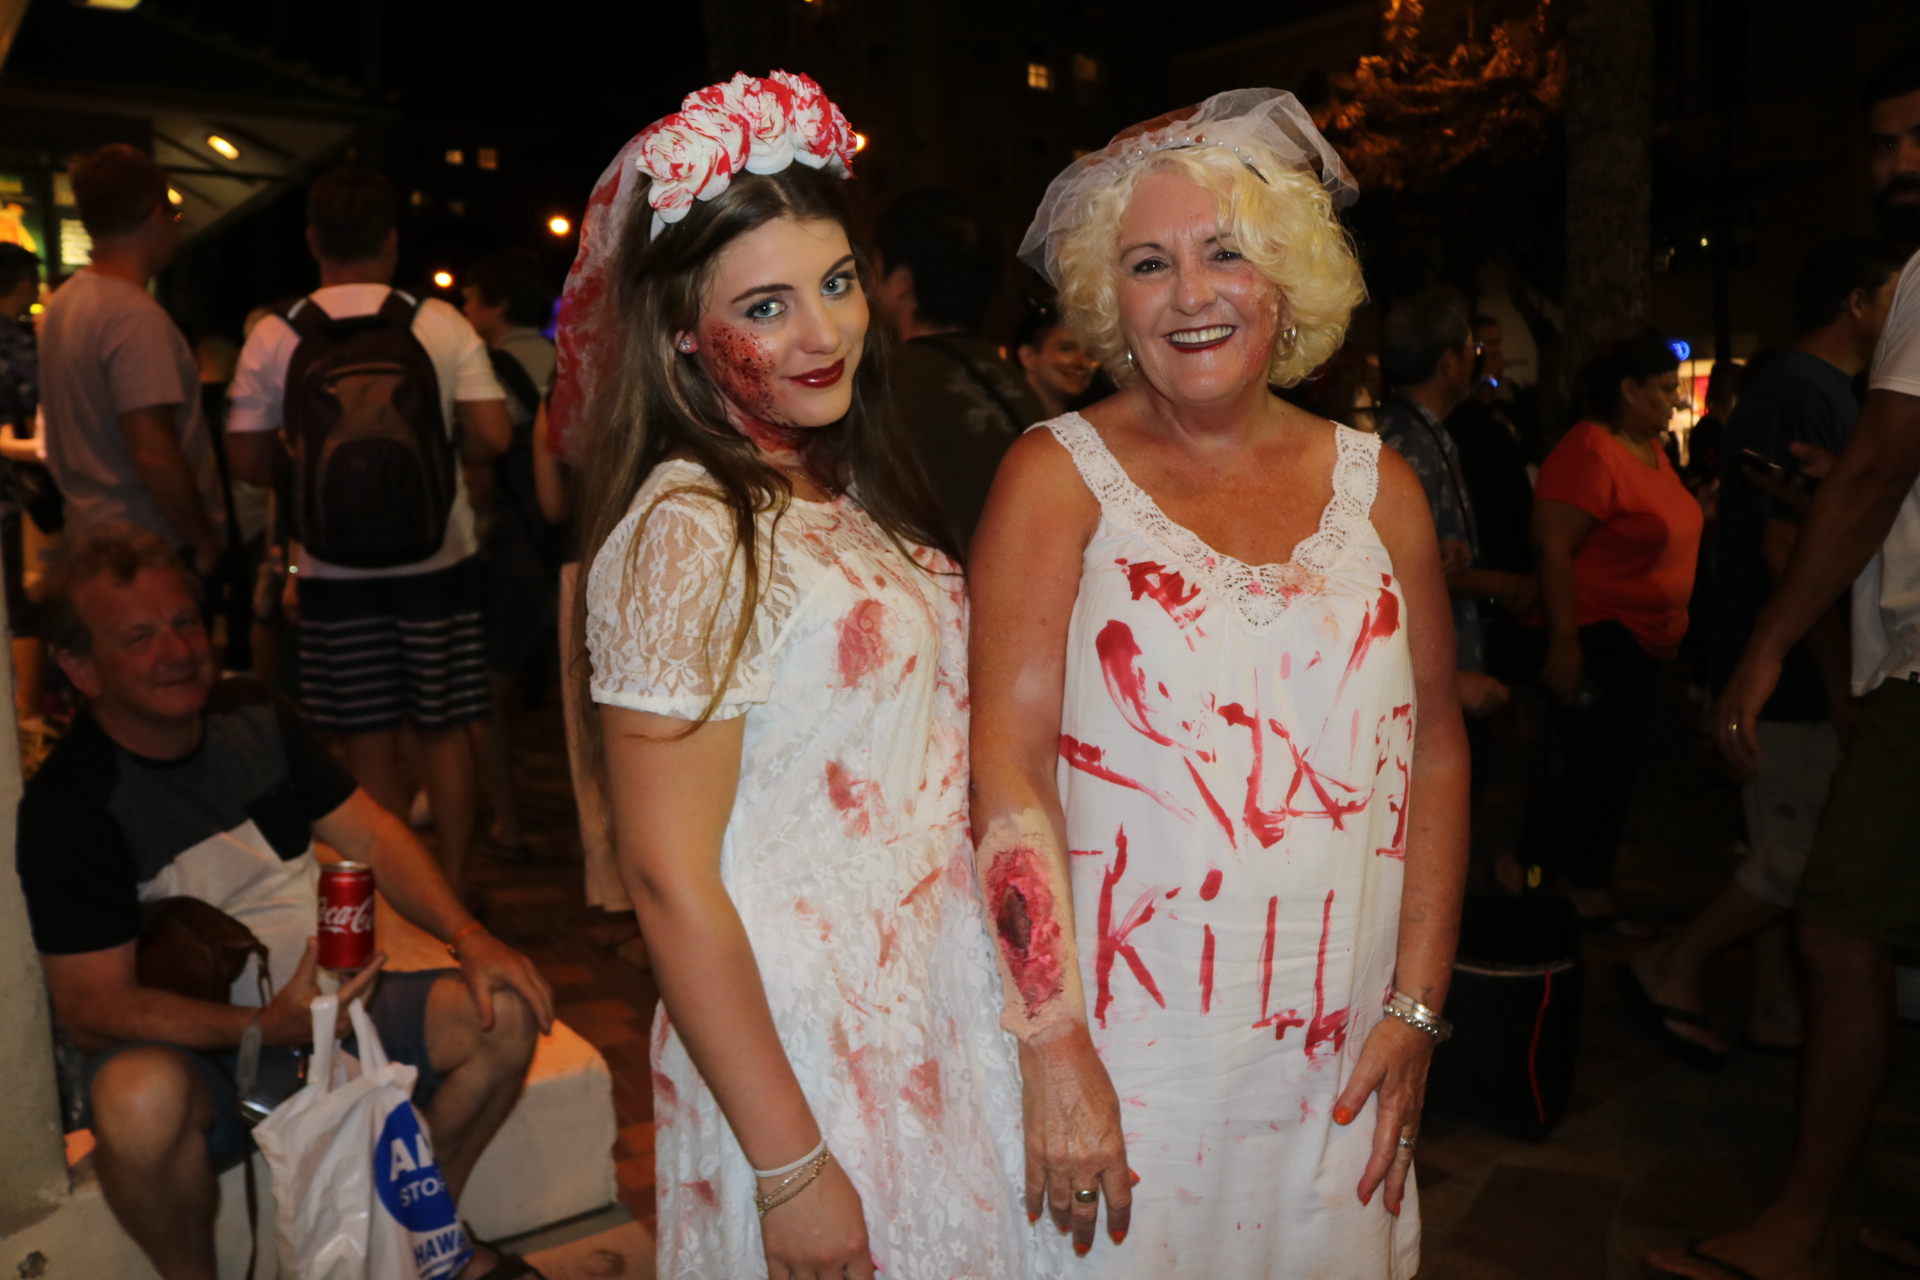 word on the street: waikiki halloween costumes | kapi'o news